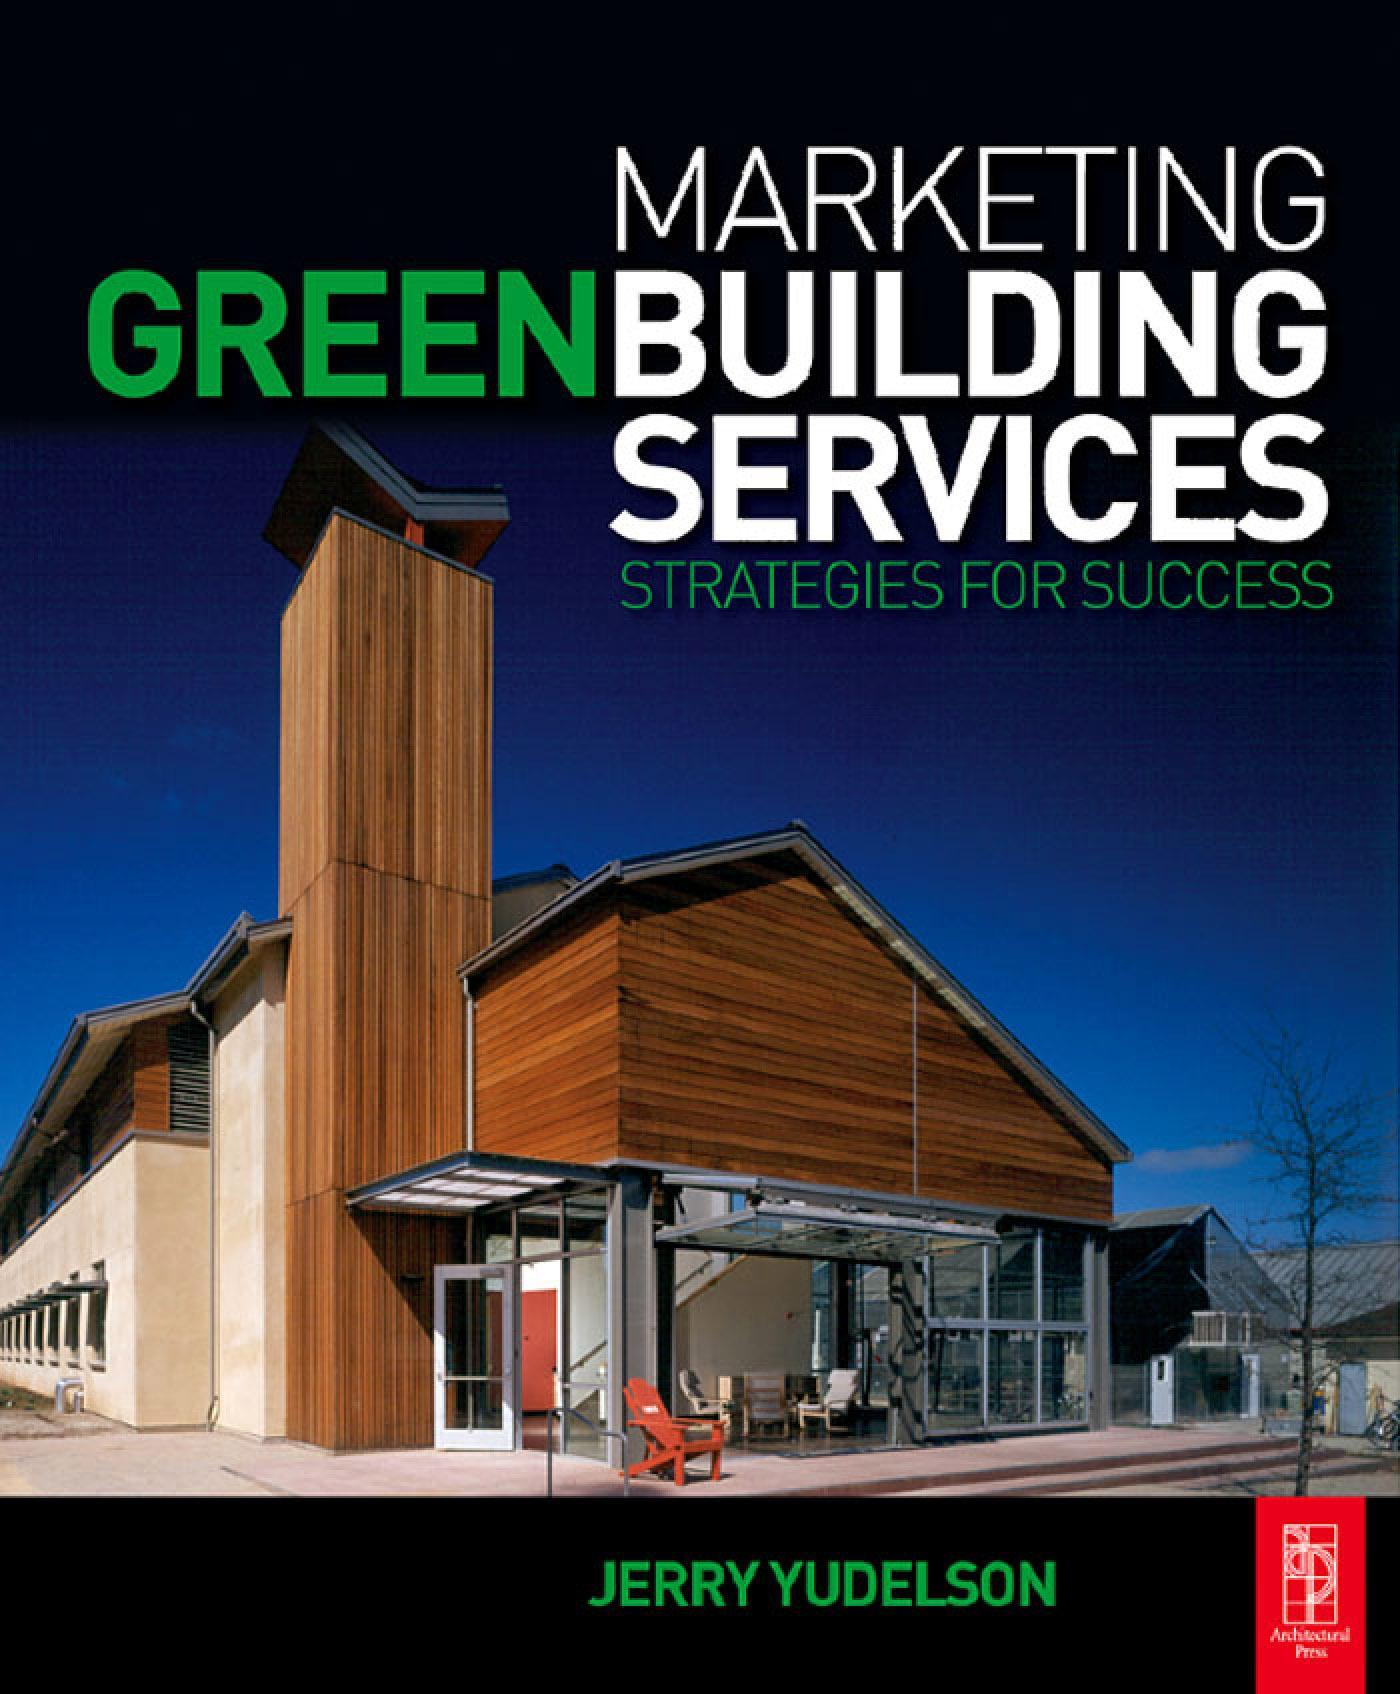 Marketing Green Building Services: Strategies for Success